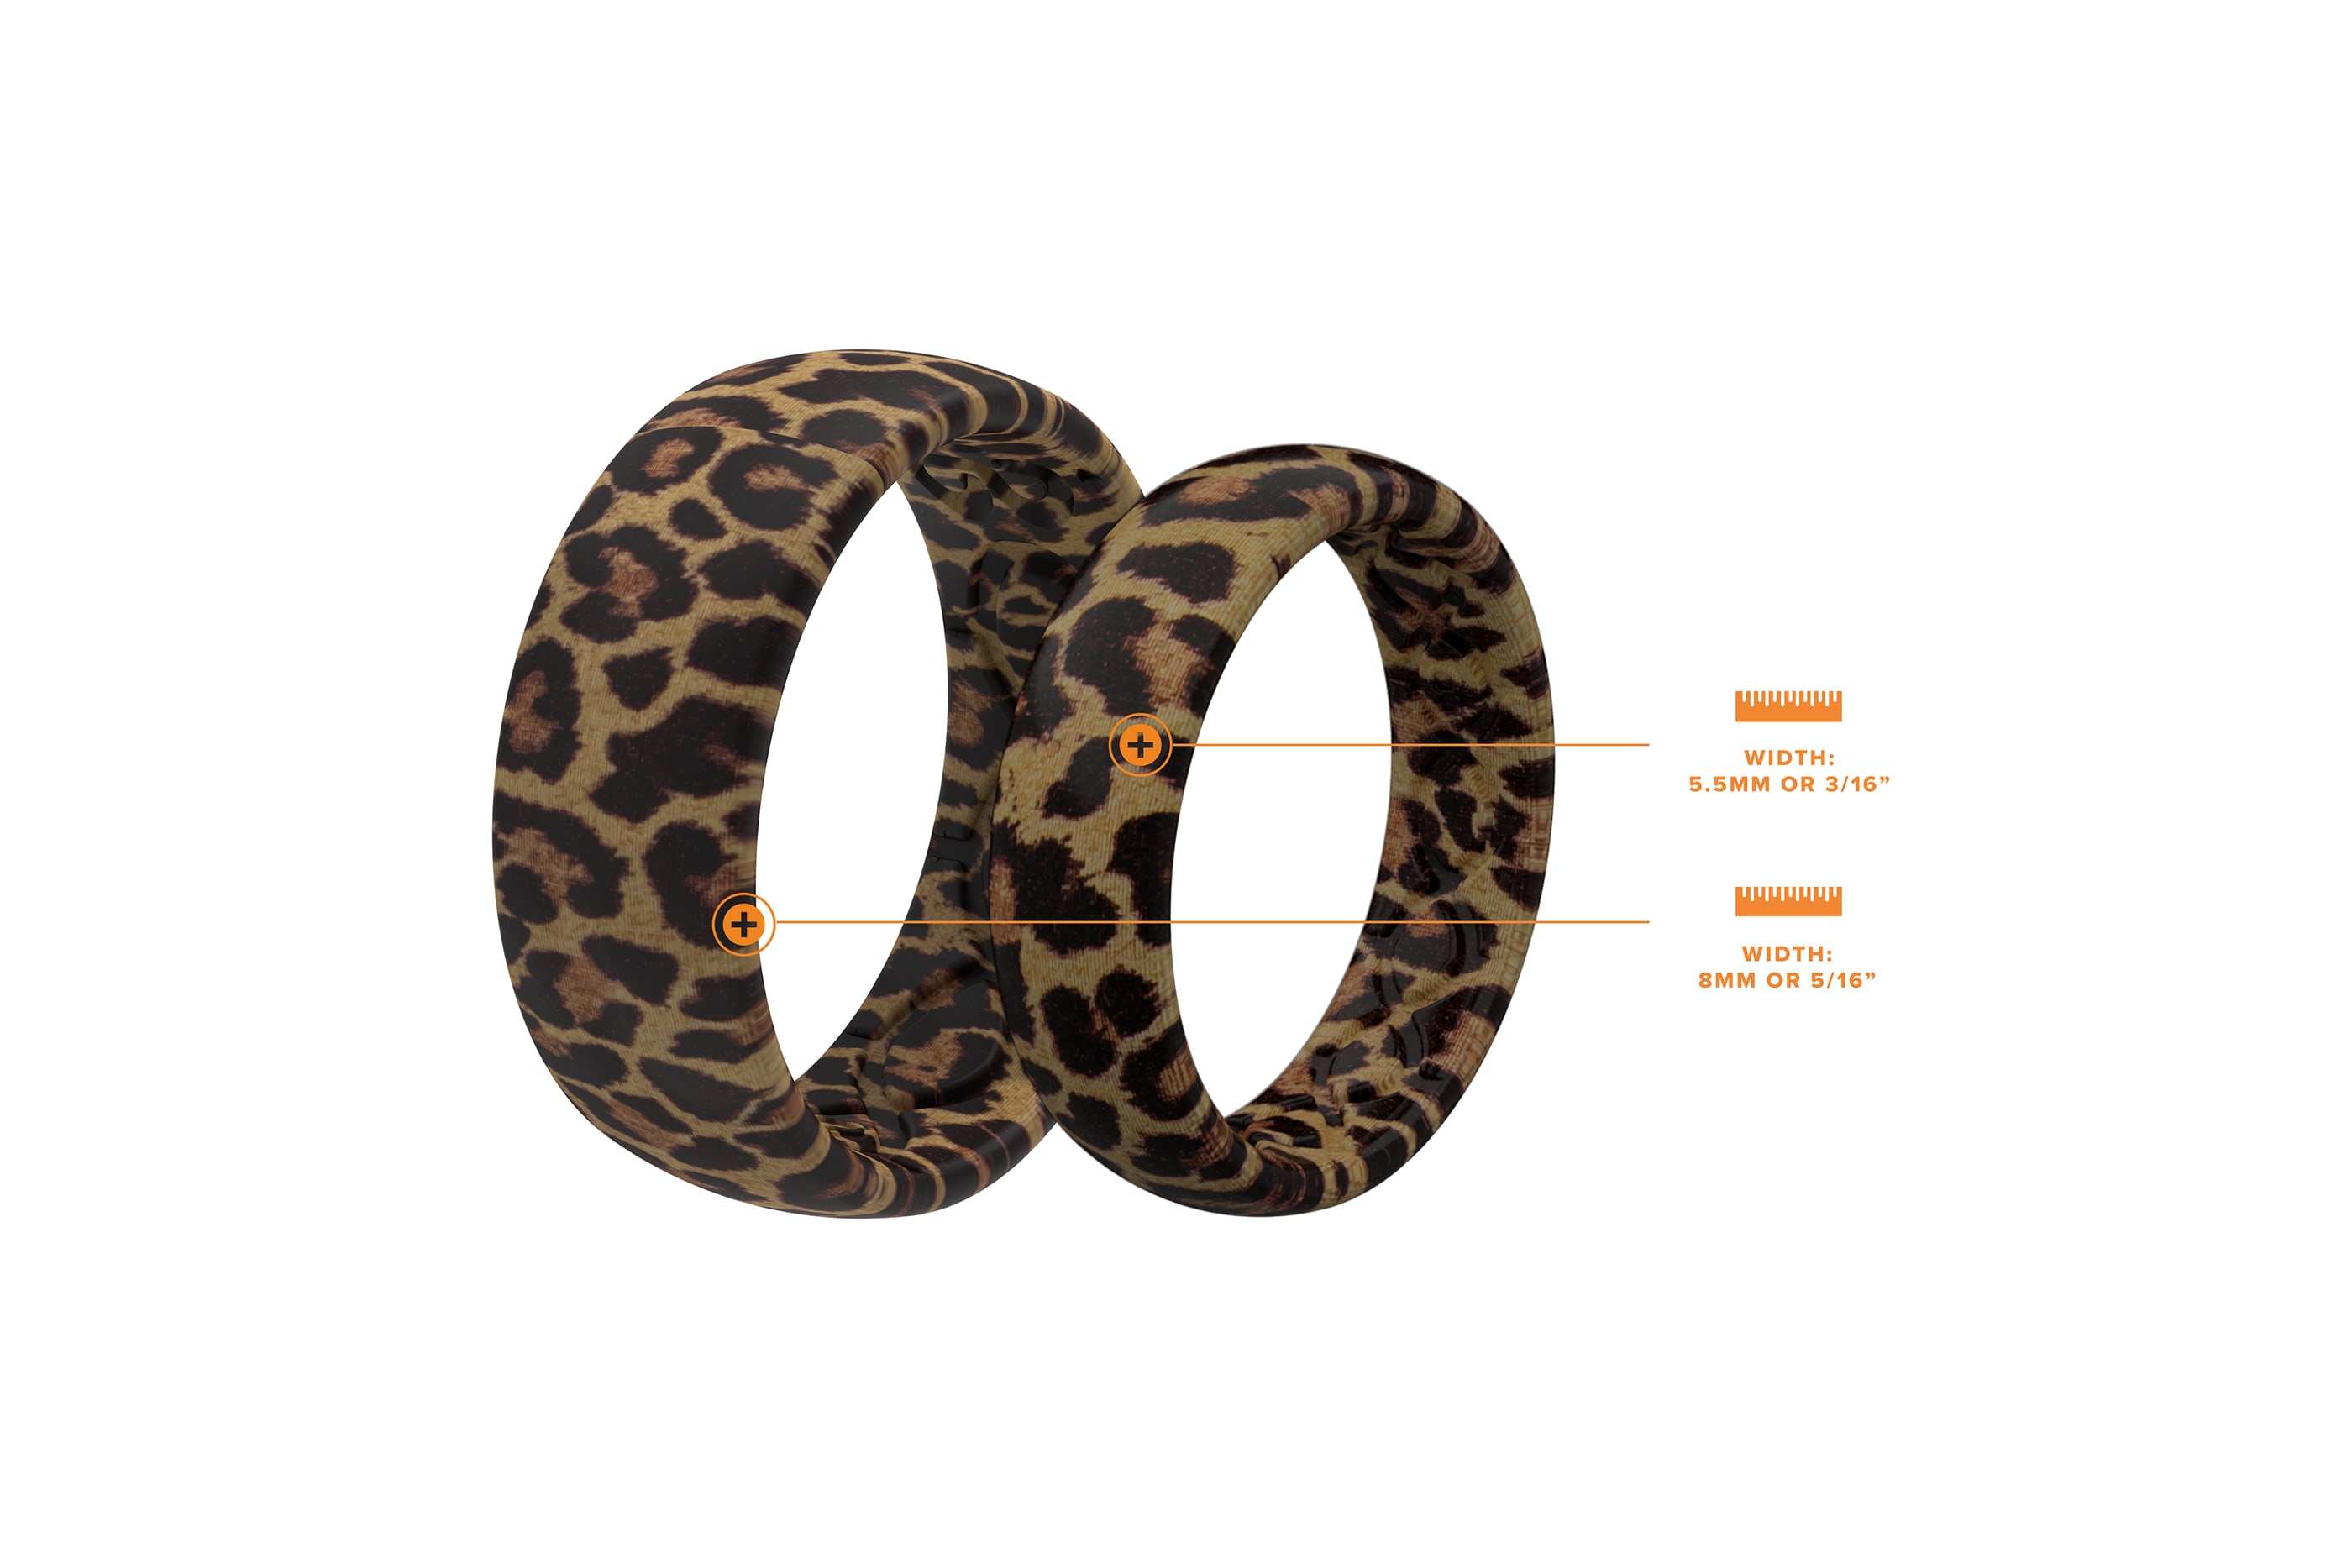 """Compare Leopard Wide (5/16"""") and Leopard Thin (3/16"""") Rings"""